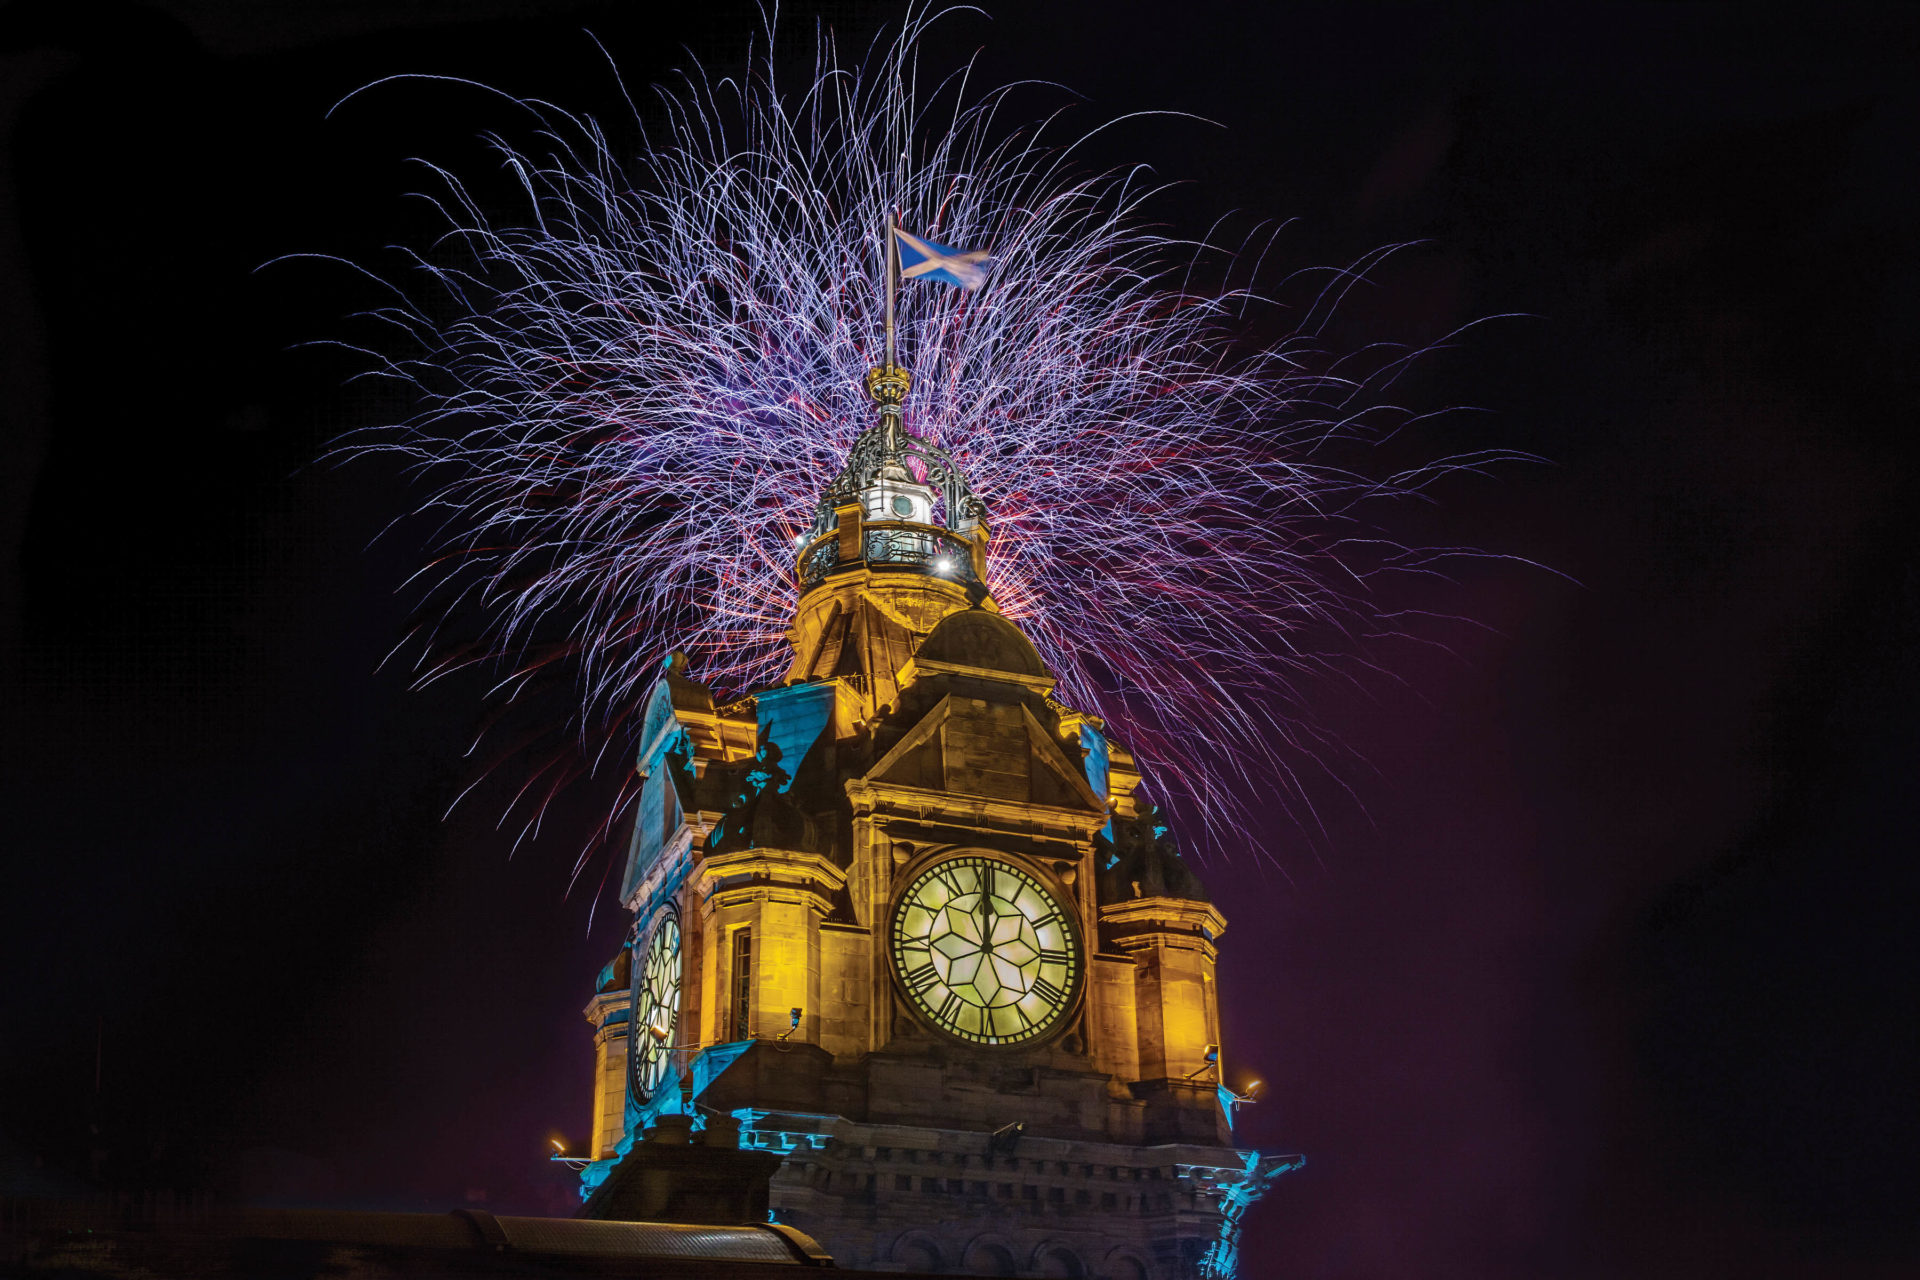 Fireworks over The Balmoral